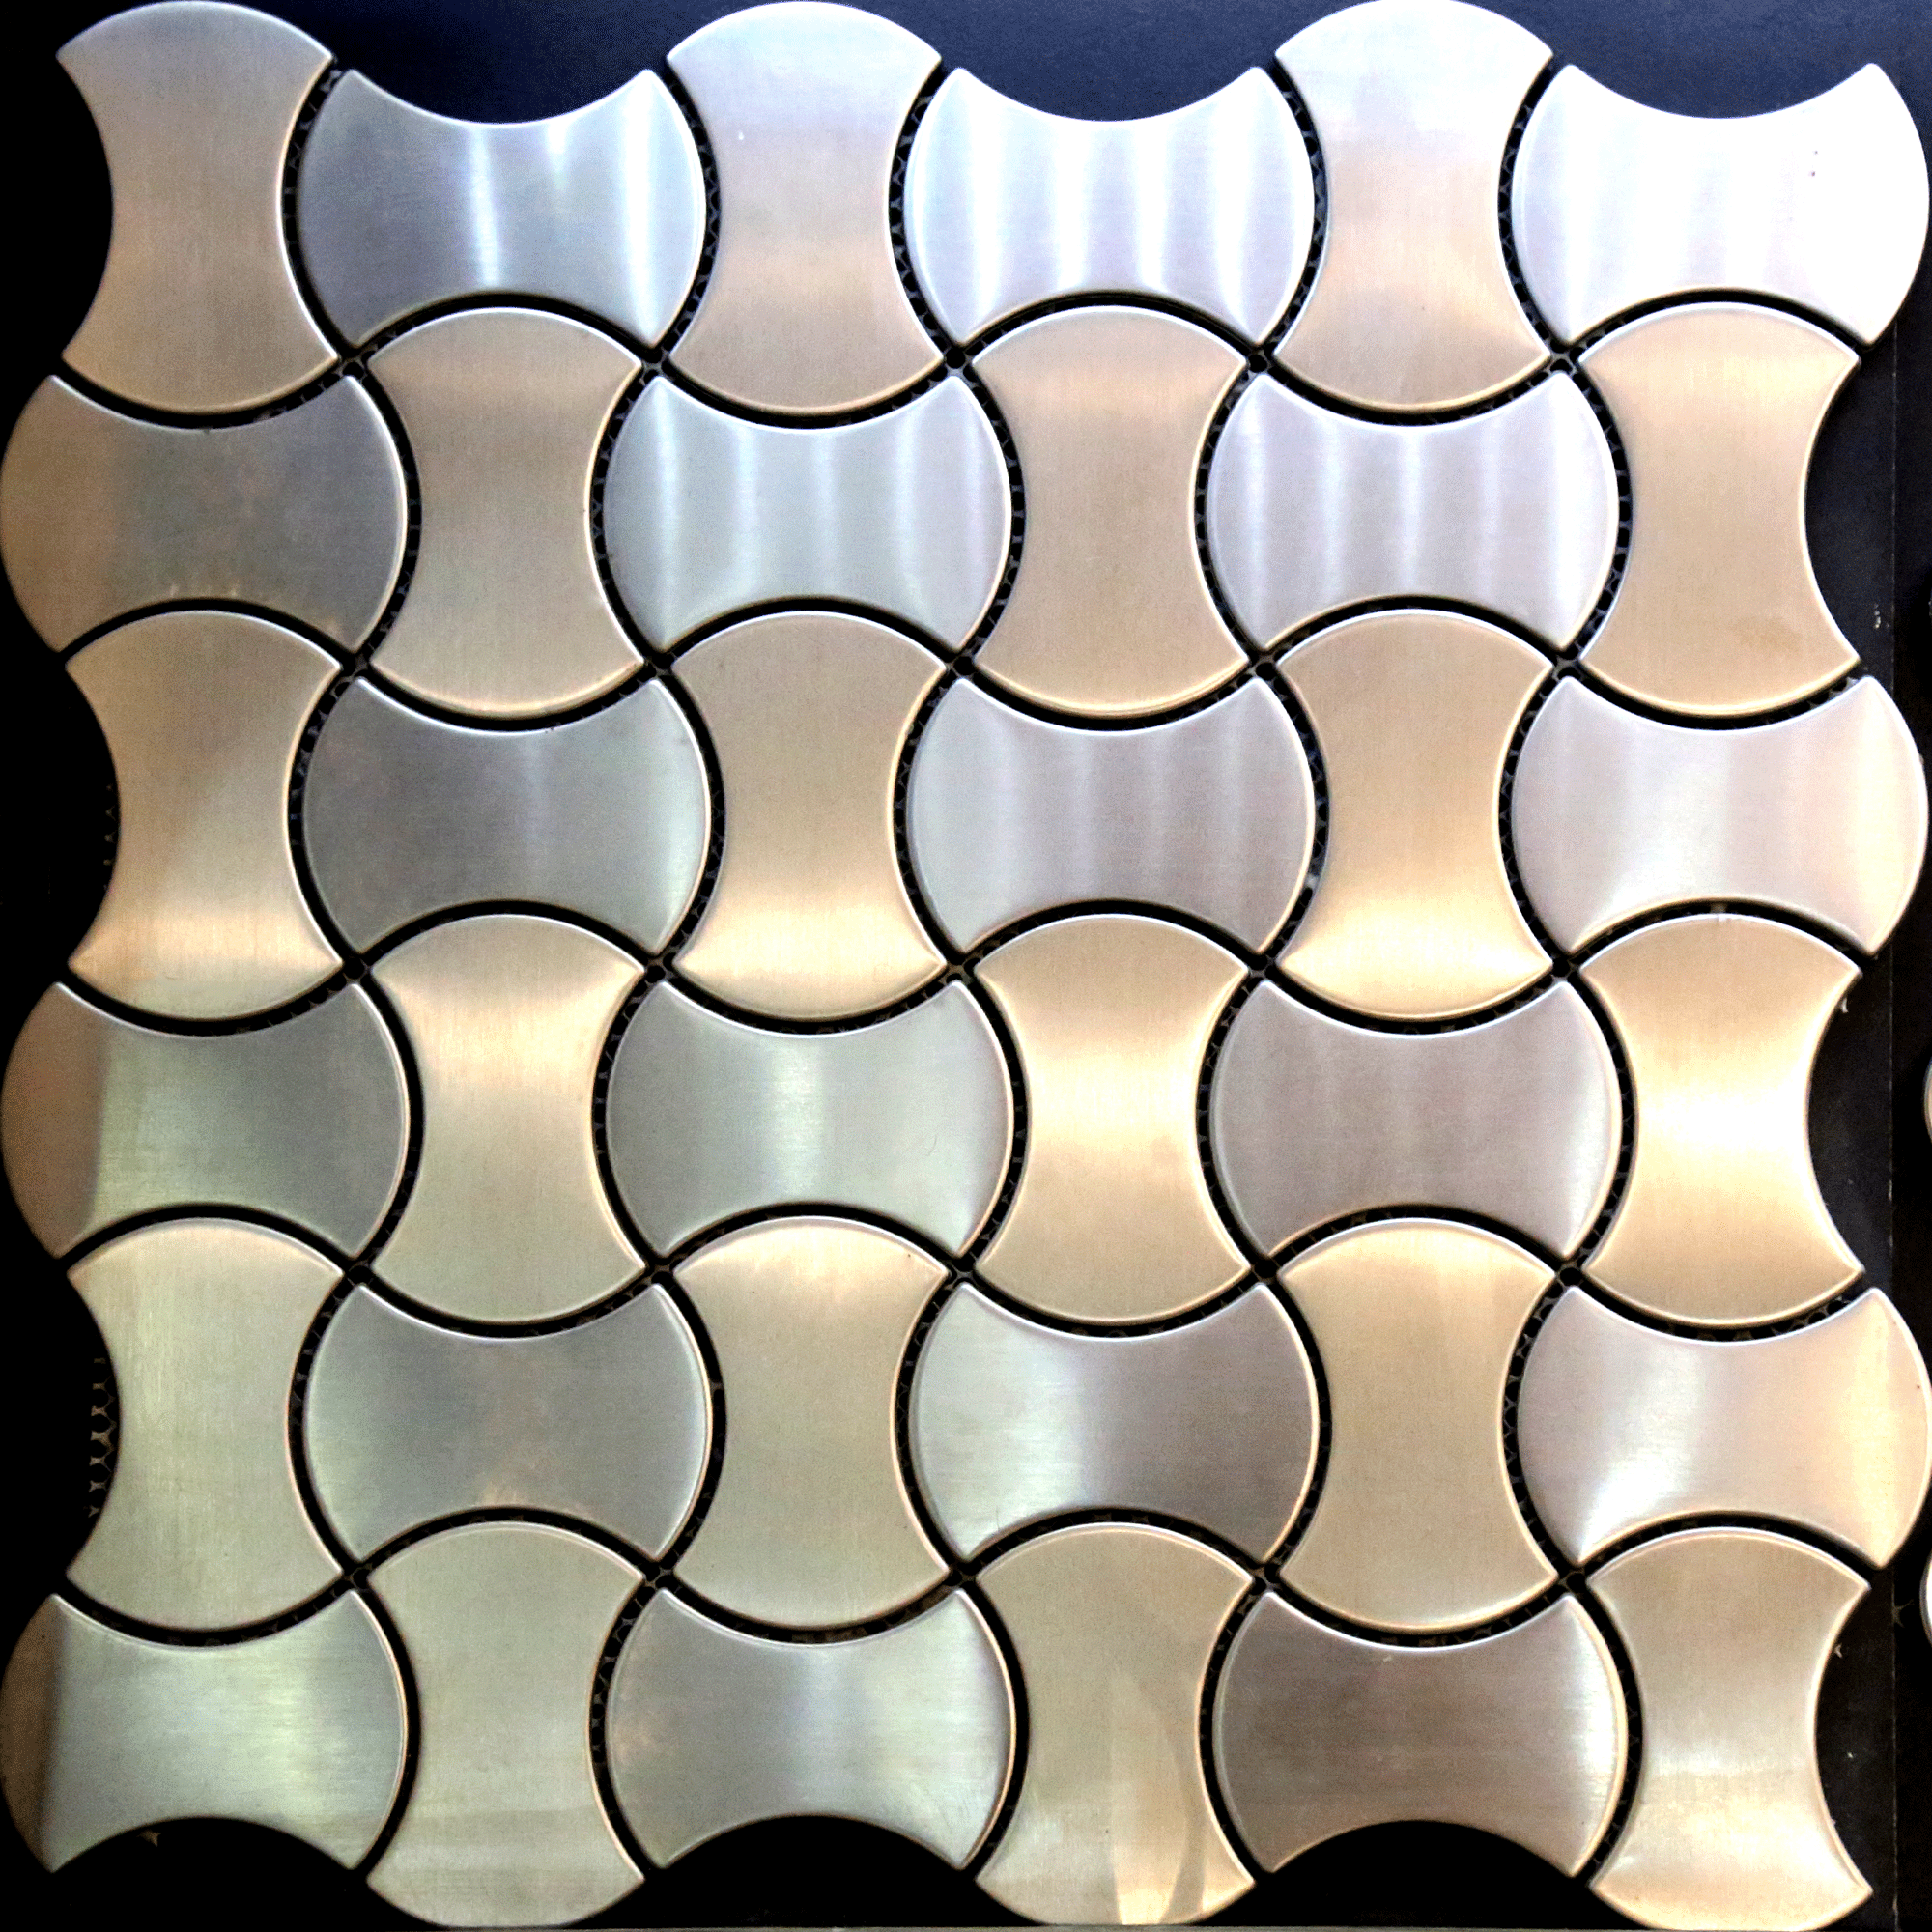 - Mosaic Tile Silver Mix Gold Brushed Stainless Steel 3D Wall Backsplash